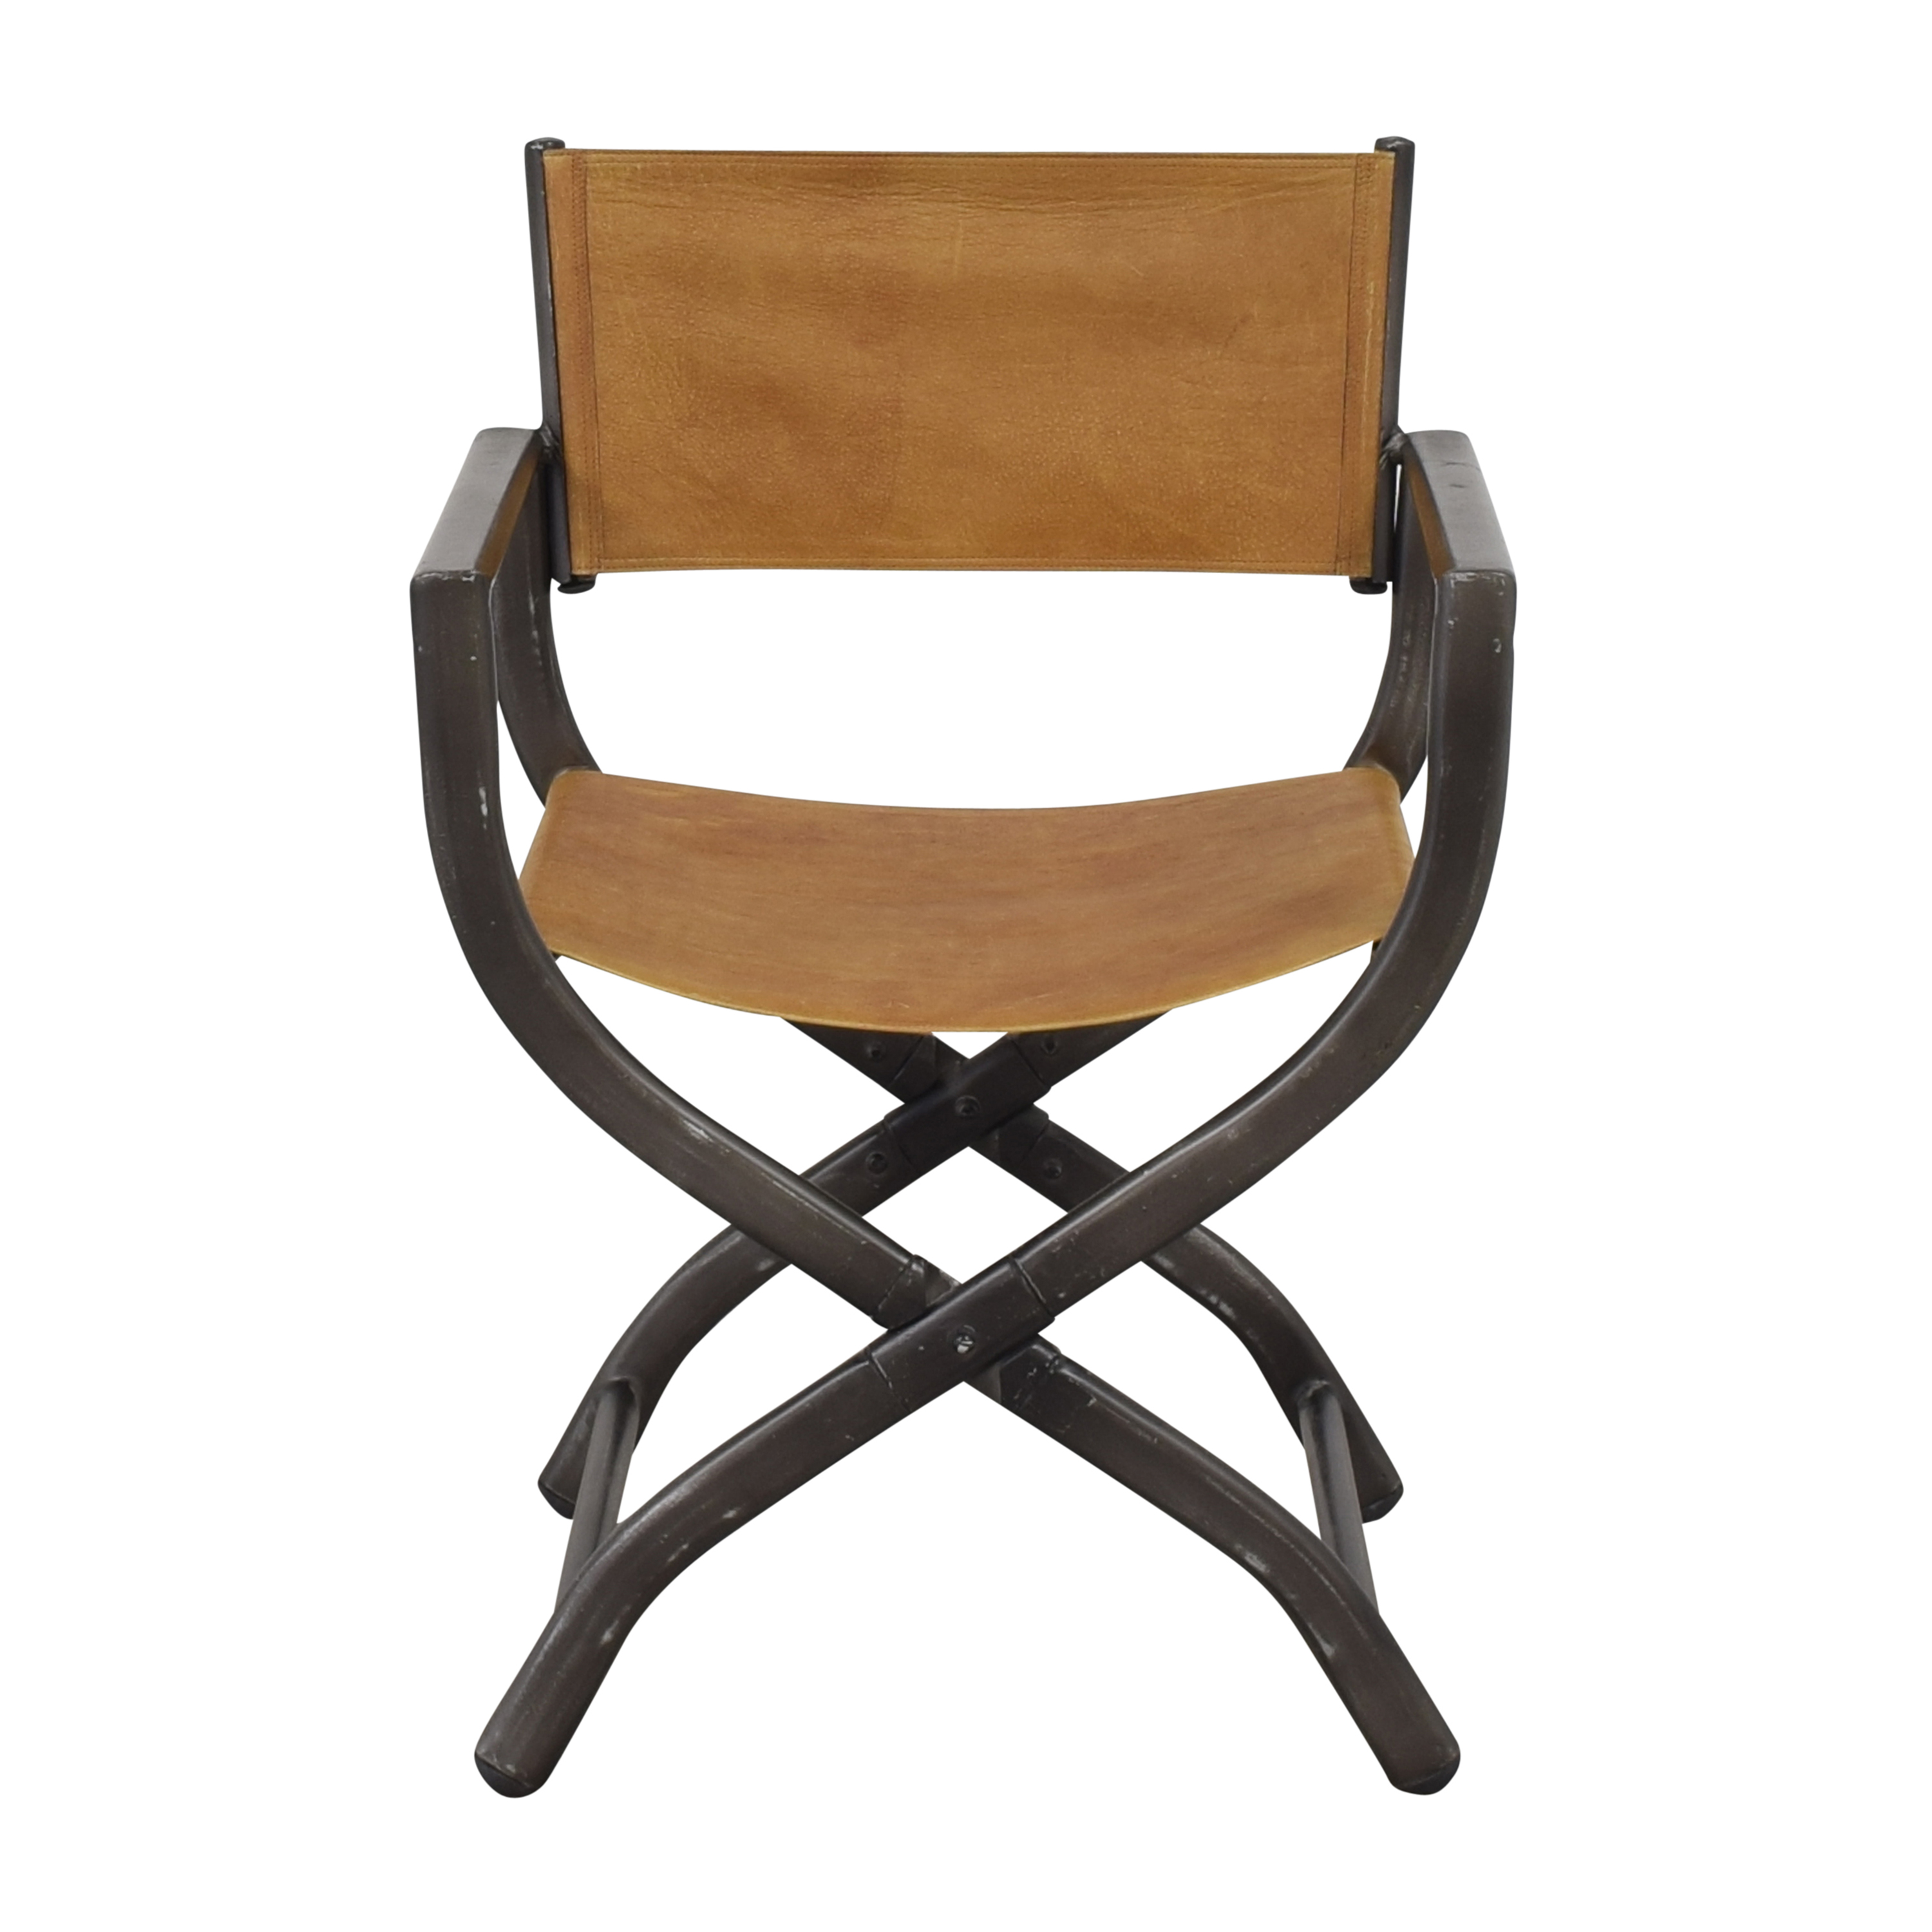 Restoration Hardware Restoration Hardware 1970s French Director's Chair second hand